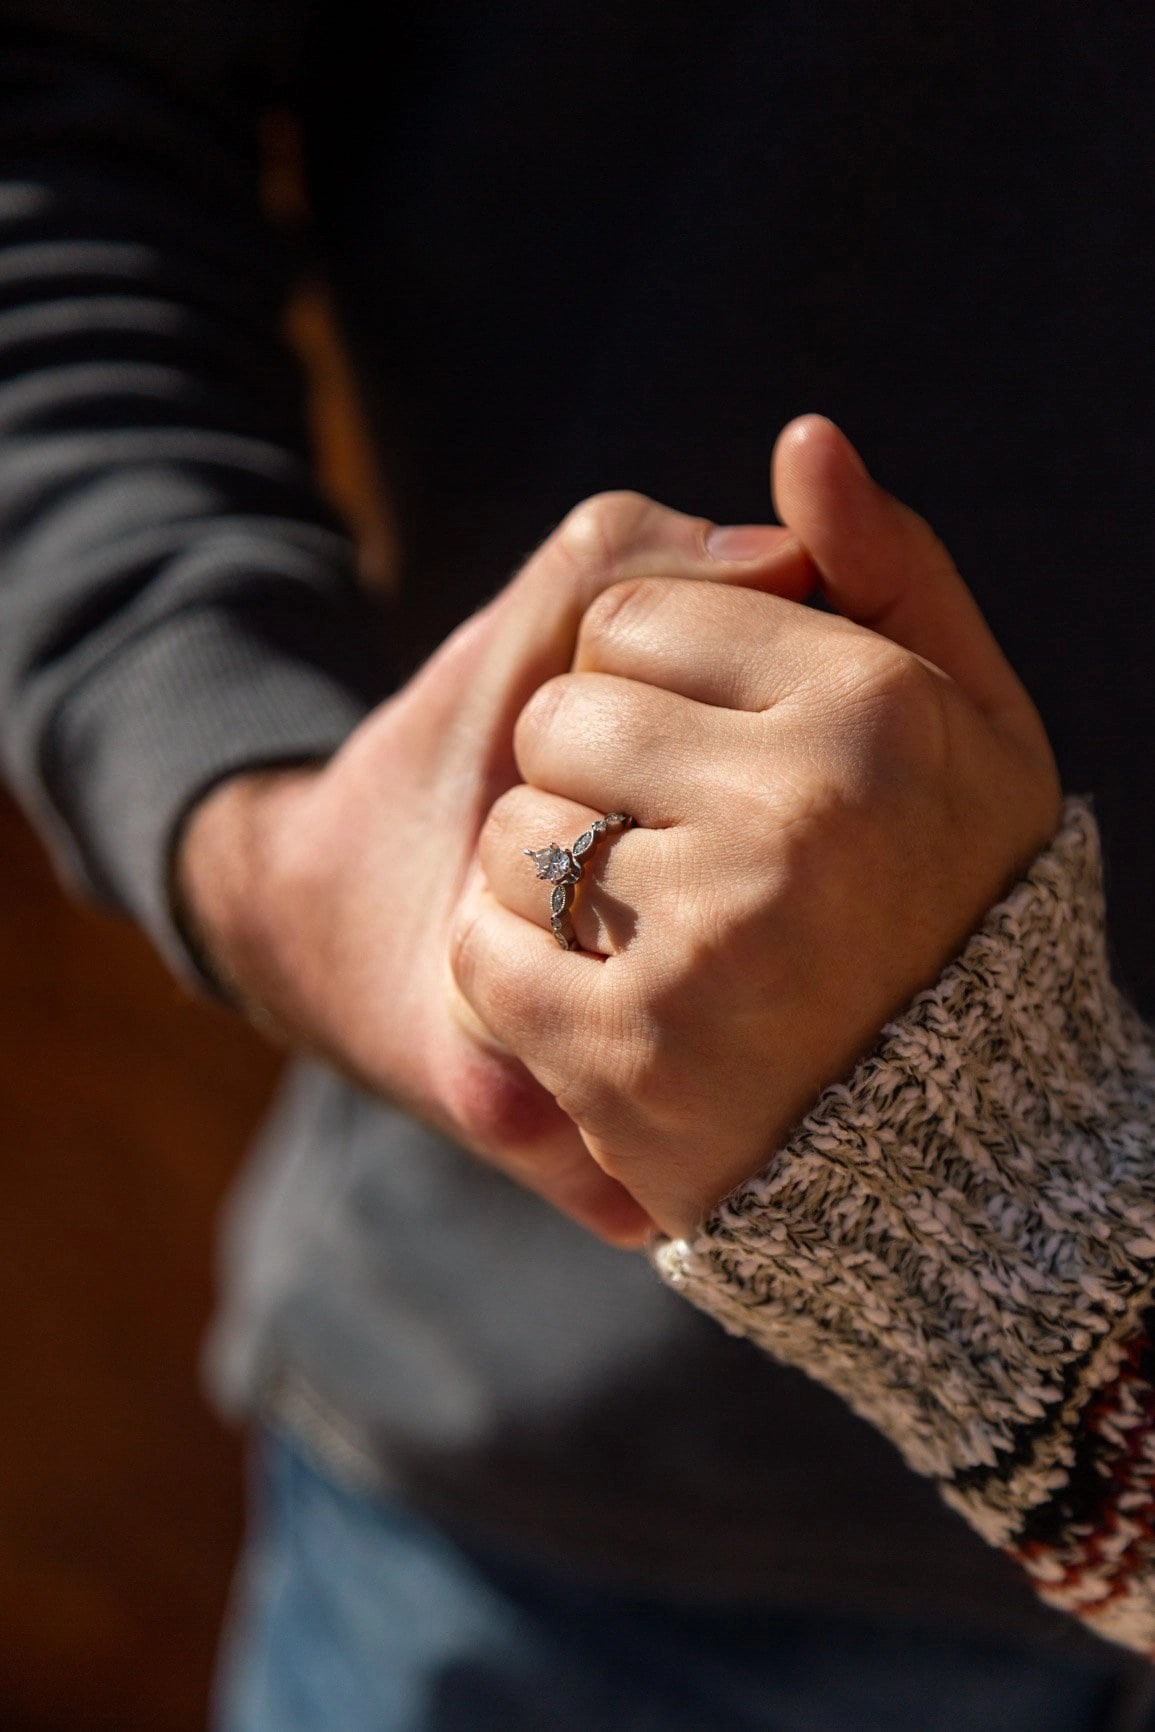 Engagement ring shot in Garden of the Gods Colorado. Rings are best shown off in nature